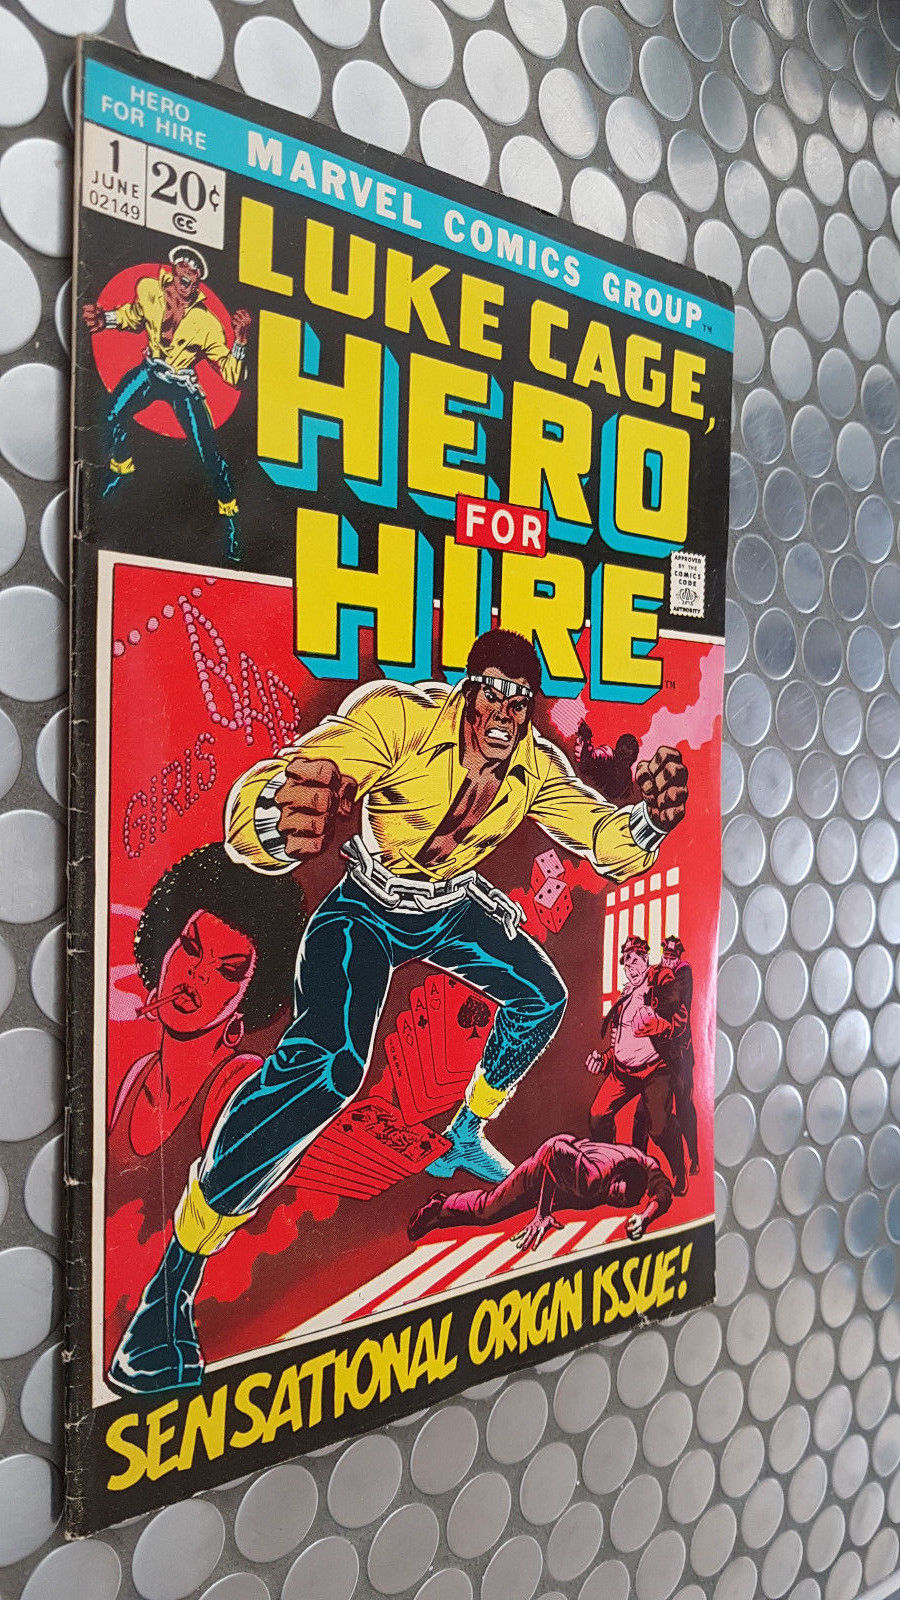 LUKE CAGE HERO FOR HIRE #1  ORIGIN ISSUE  MARVEL 1972 KEY